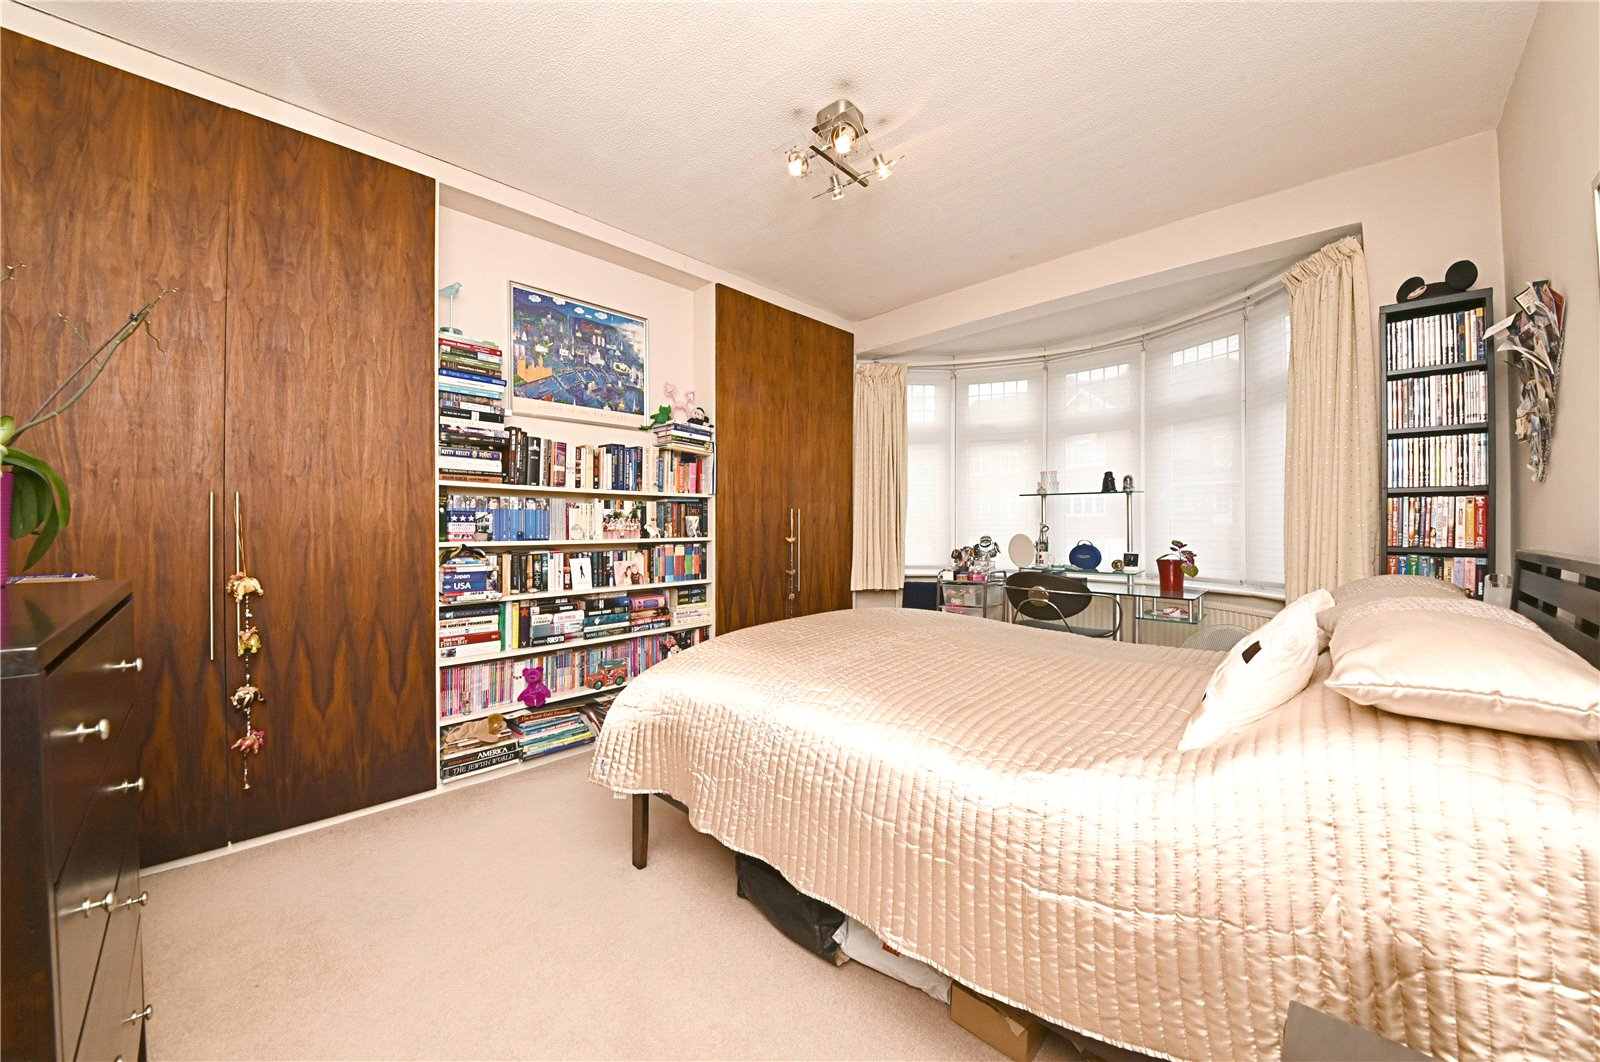 4 bed house for sale in Hendon, NW4 1LJ  - Property Image 10